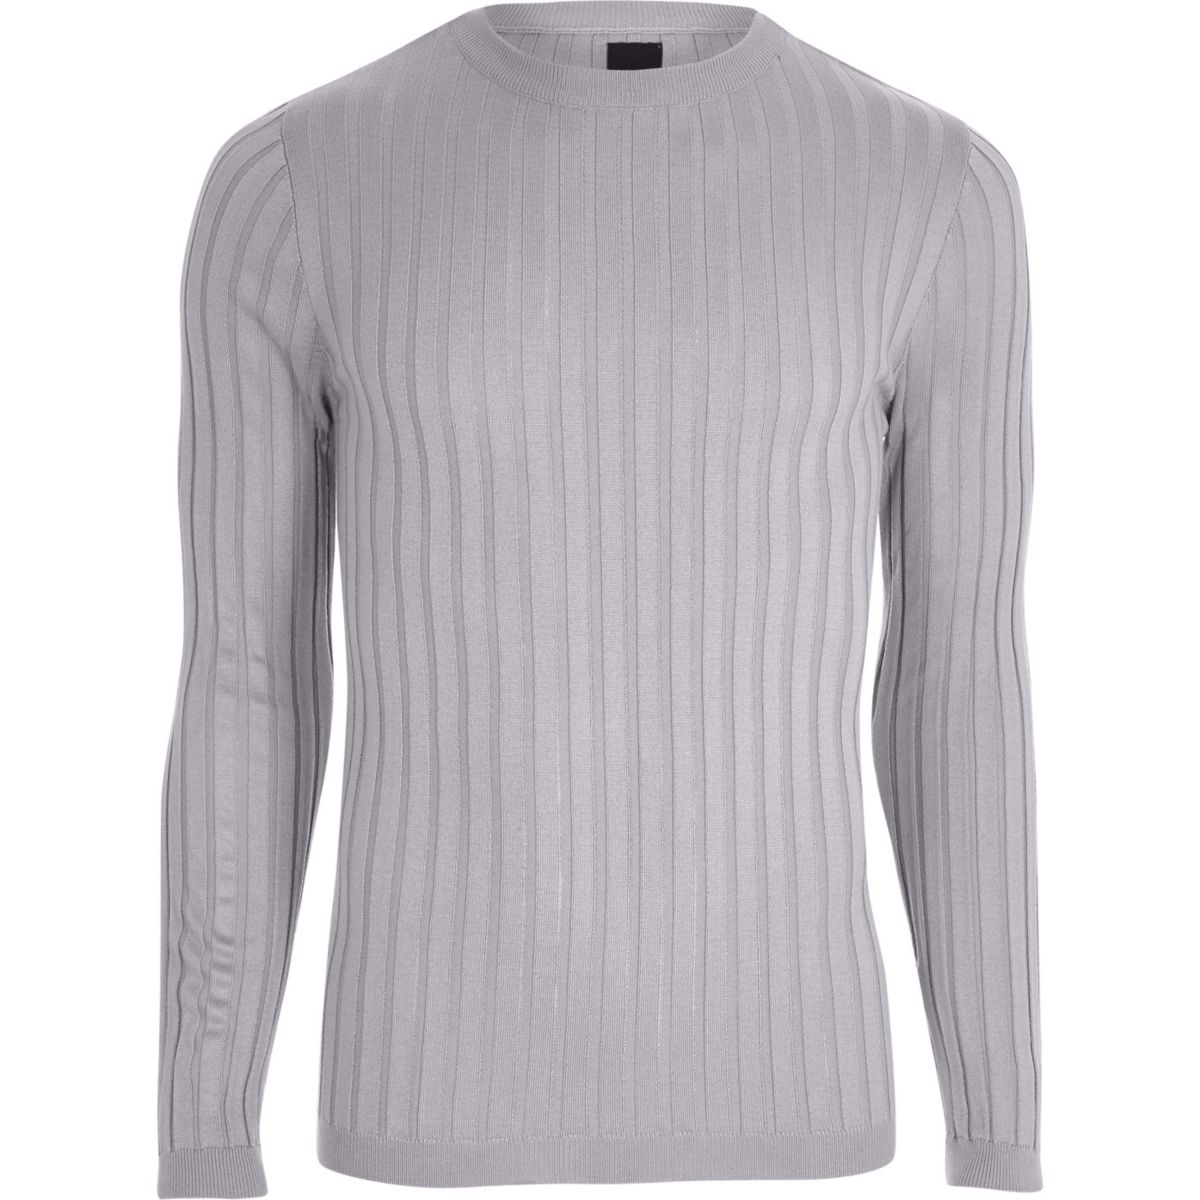 Light grey rib knit muscle fit sweater